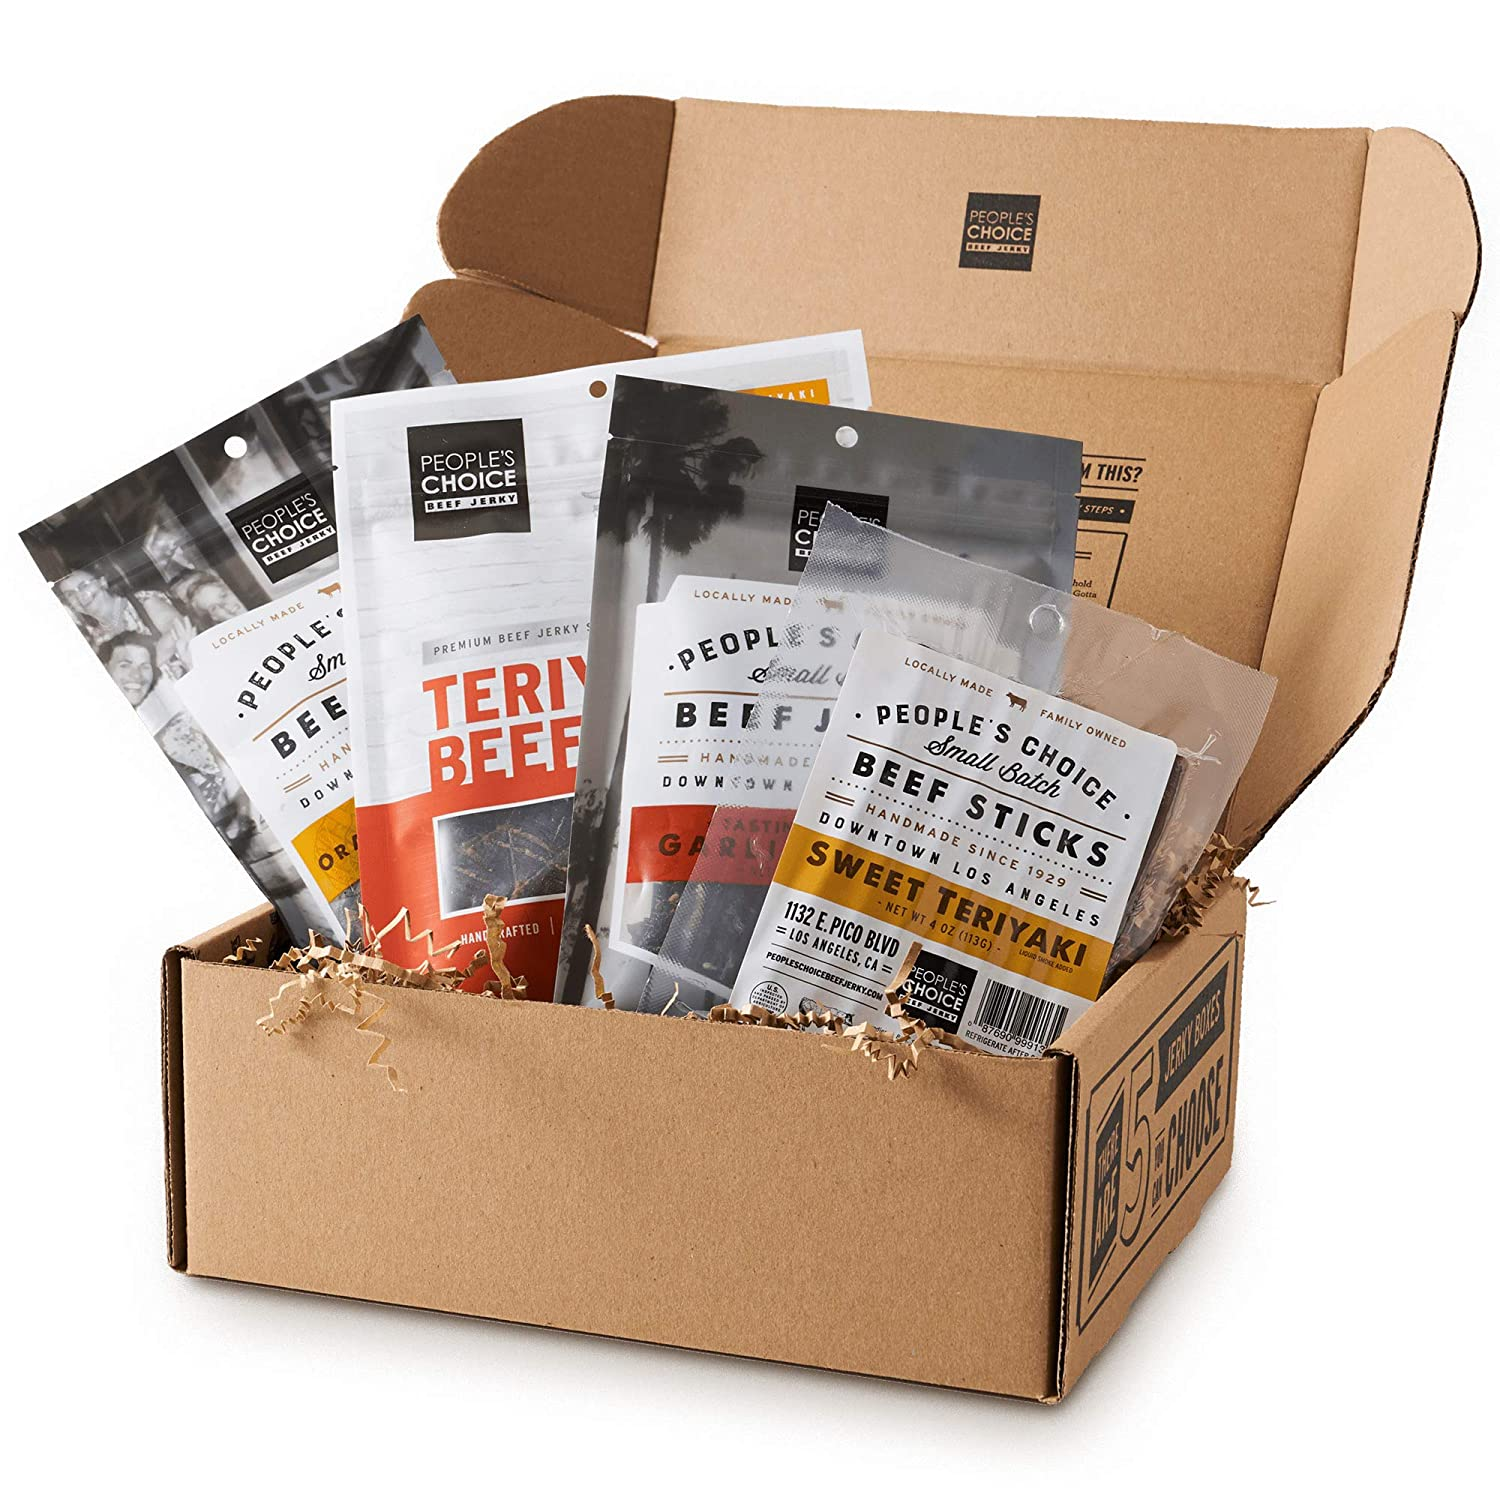 People's Choice Beef Jerky - Jerky Box - Sweet Tooth - Unique Gift for Men - Protein Snacks Military Care Package - Best Father's Day Gifts for Him - Meat Snack Sampler Gift Basket - 4 Bags